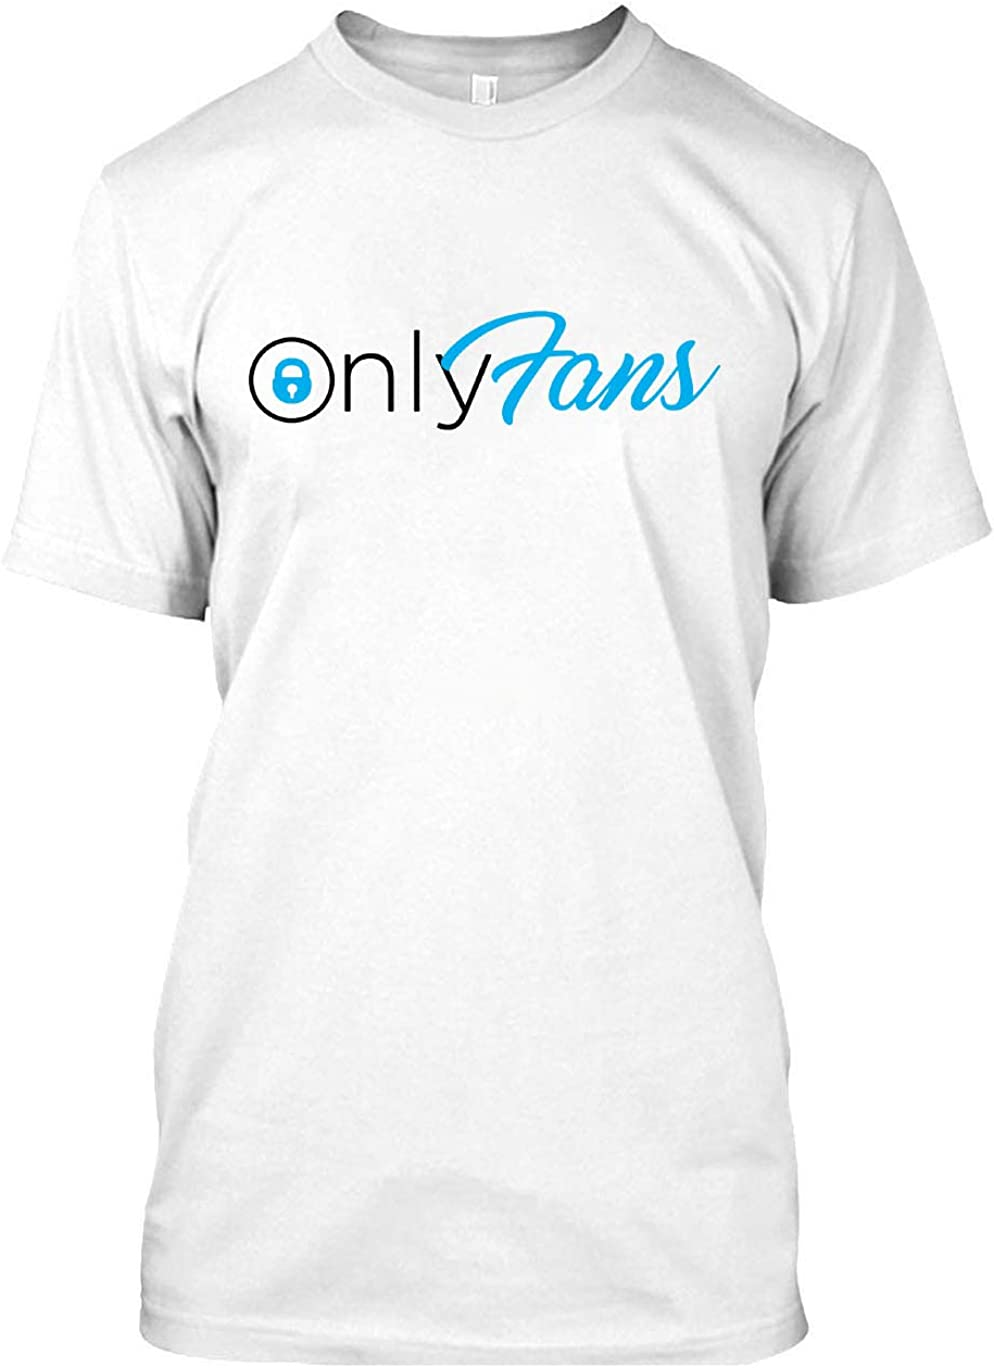 Onlyfans Classic Shirt